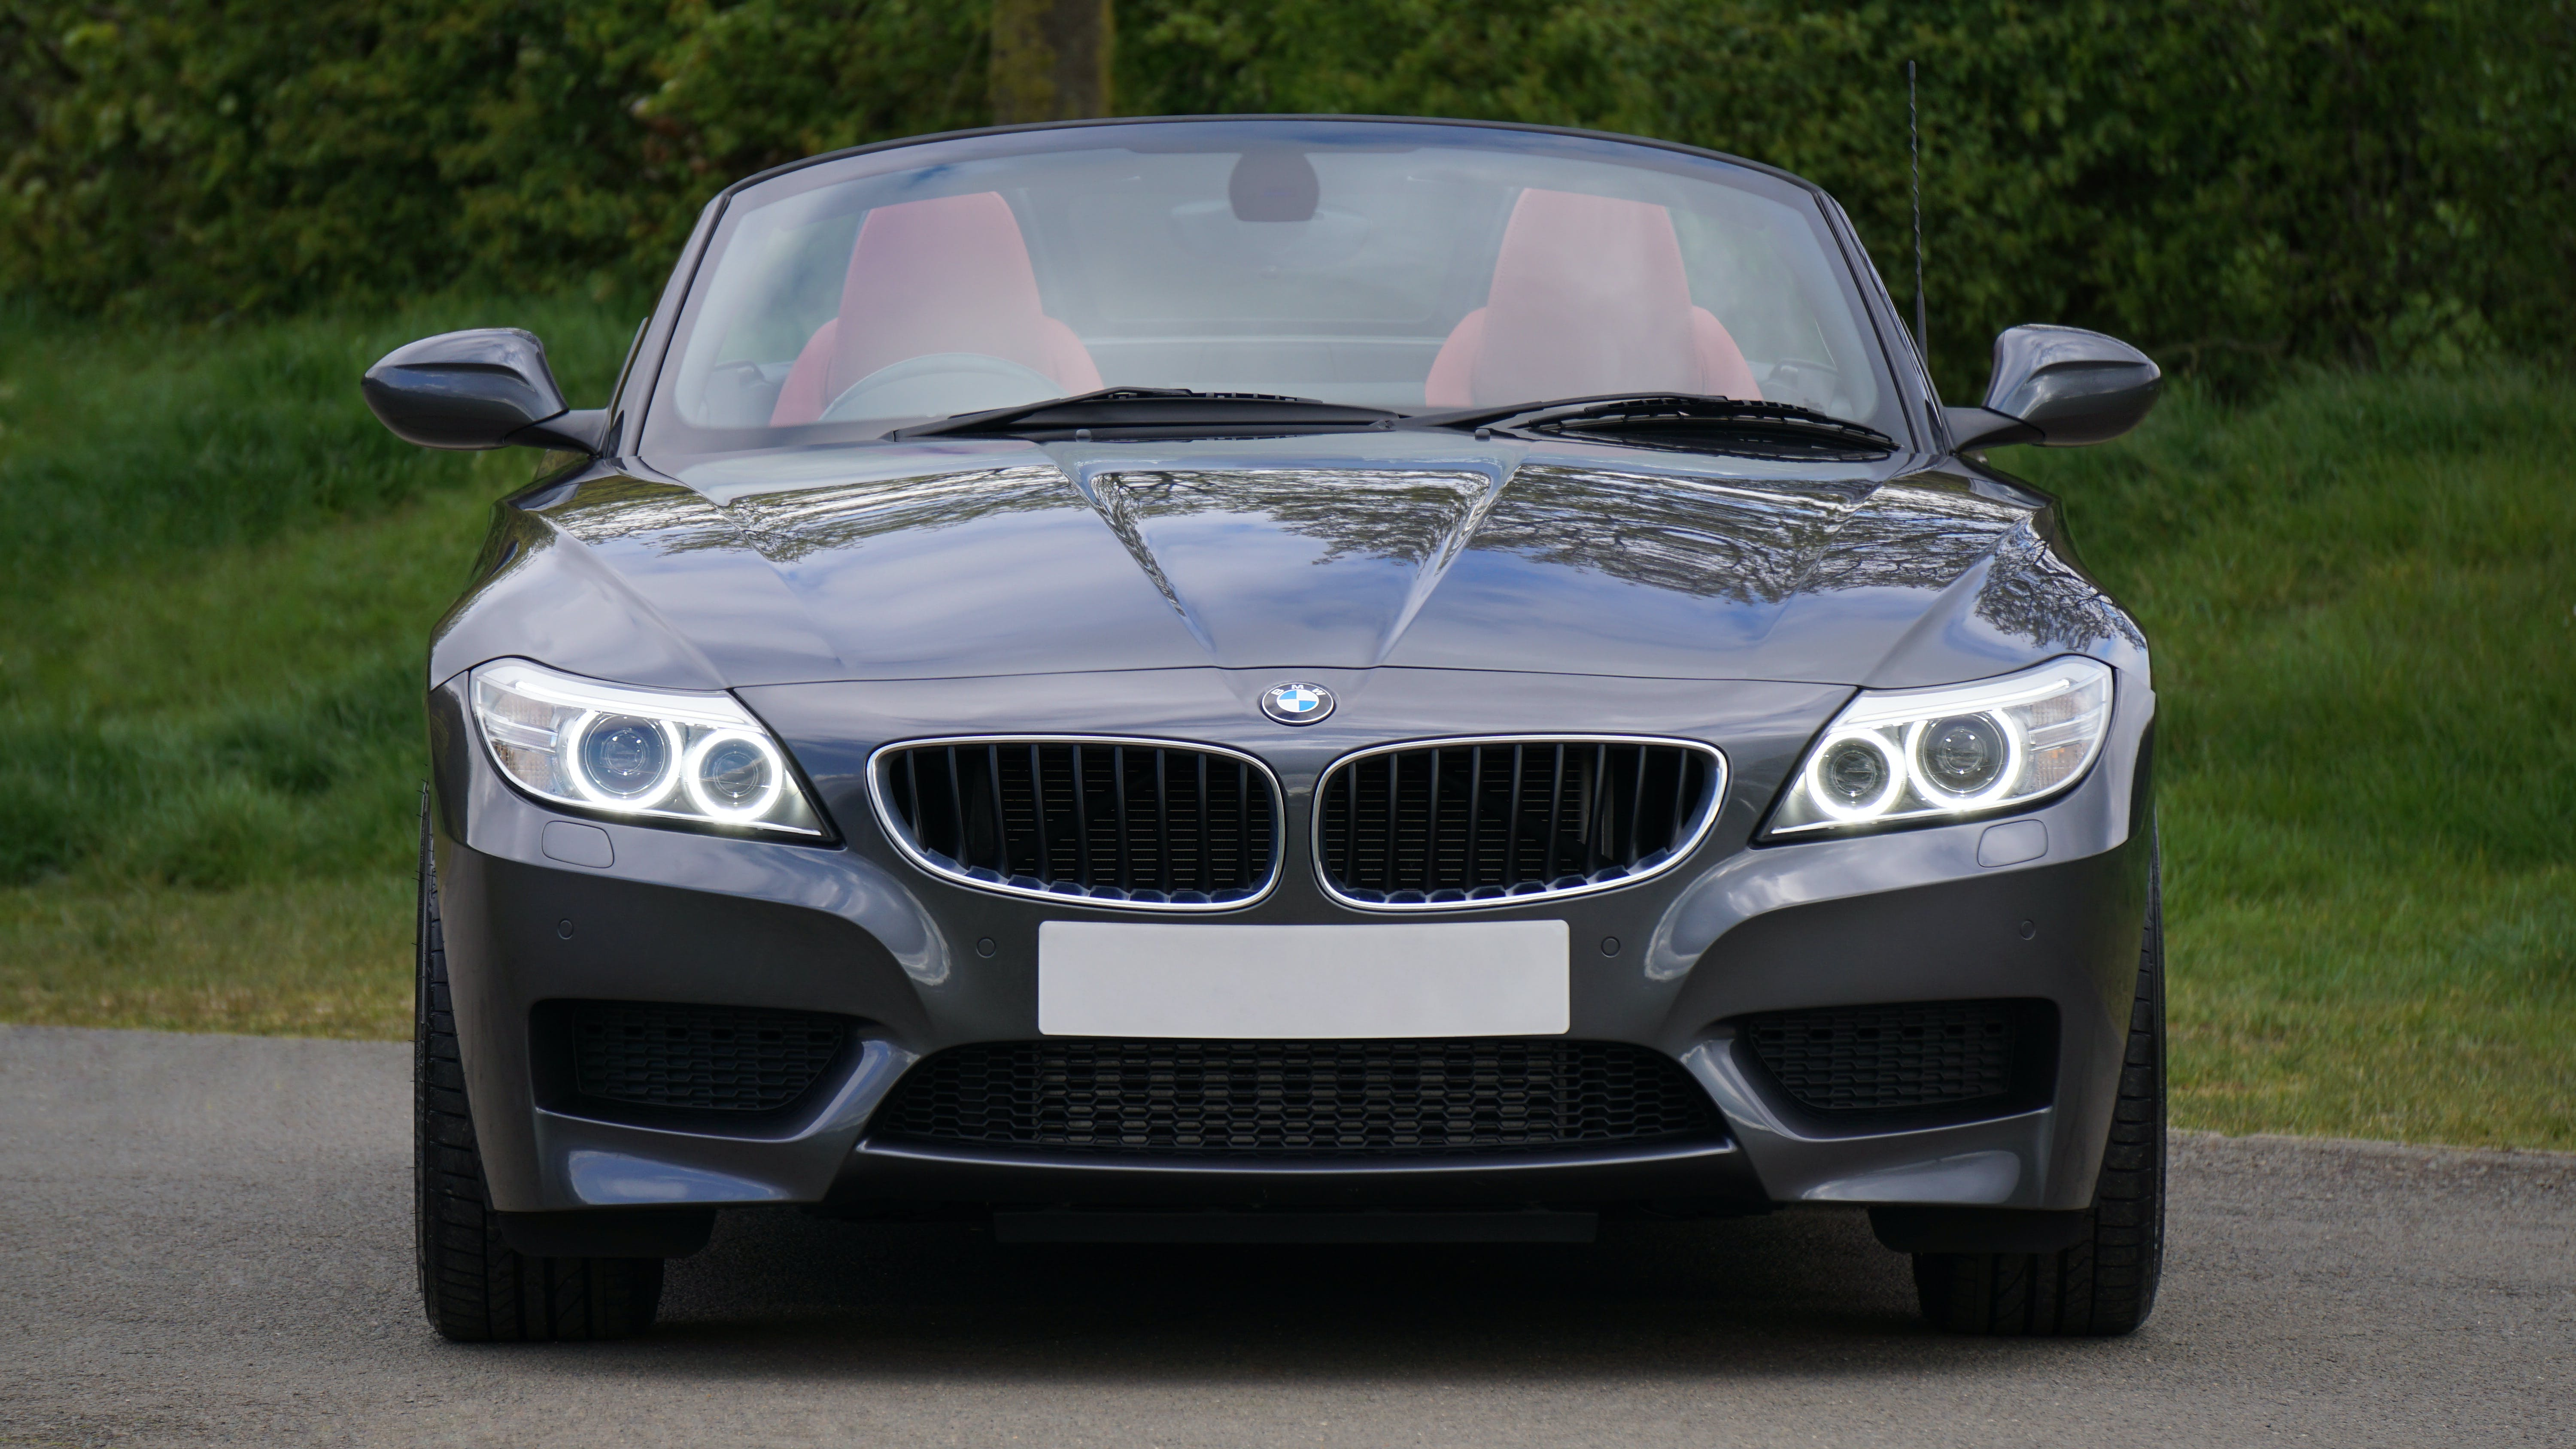 Black Bmw Convertible in Front of Green Bushes · Free Stock Photo